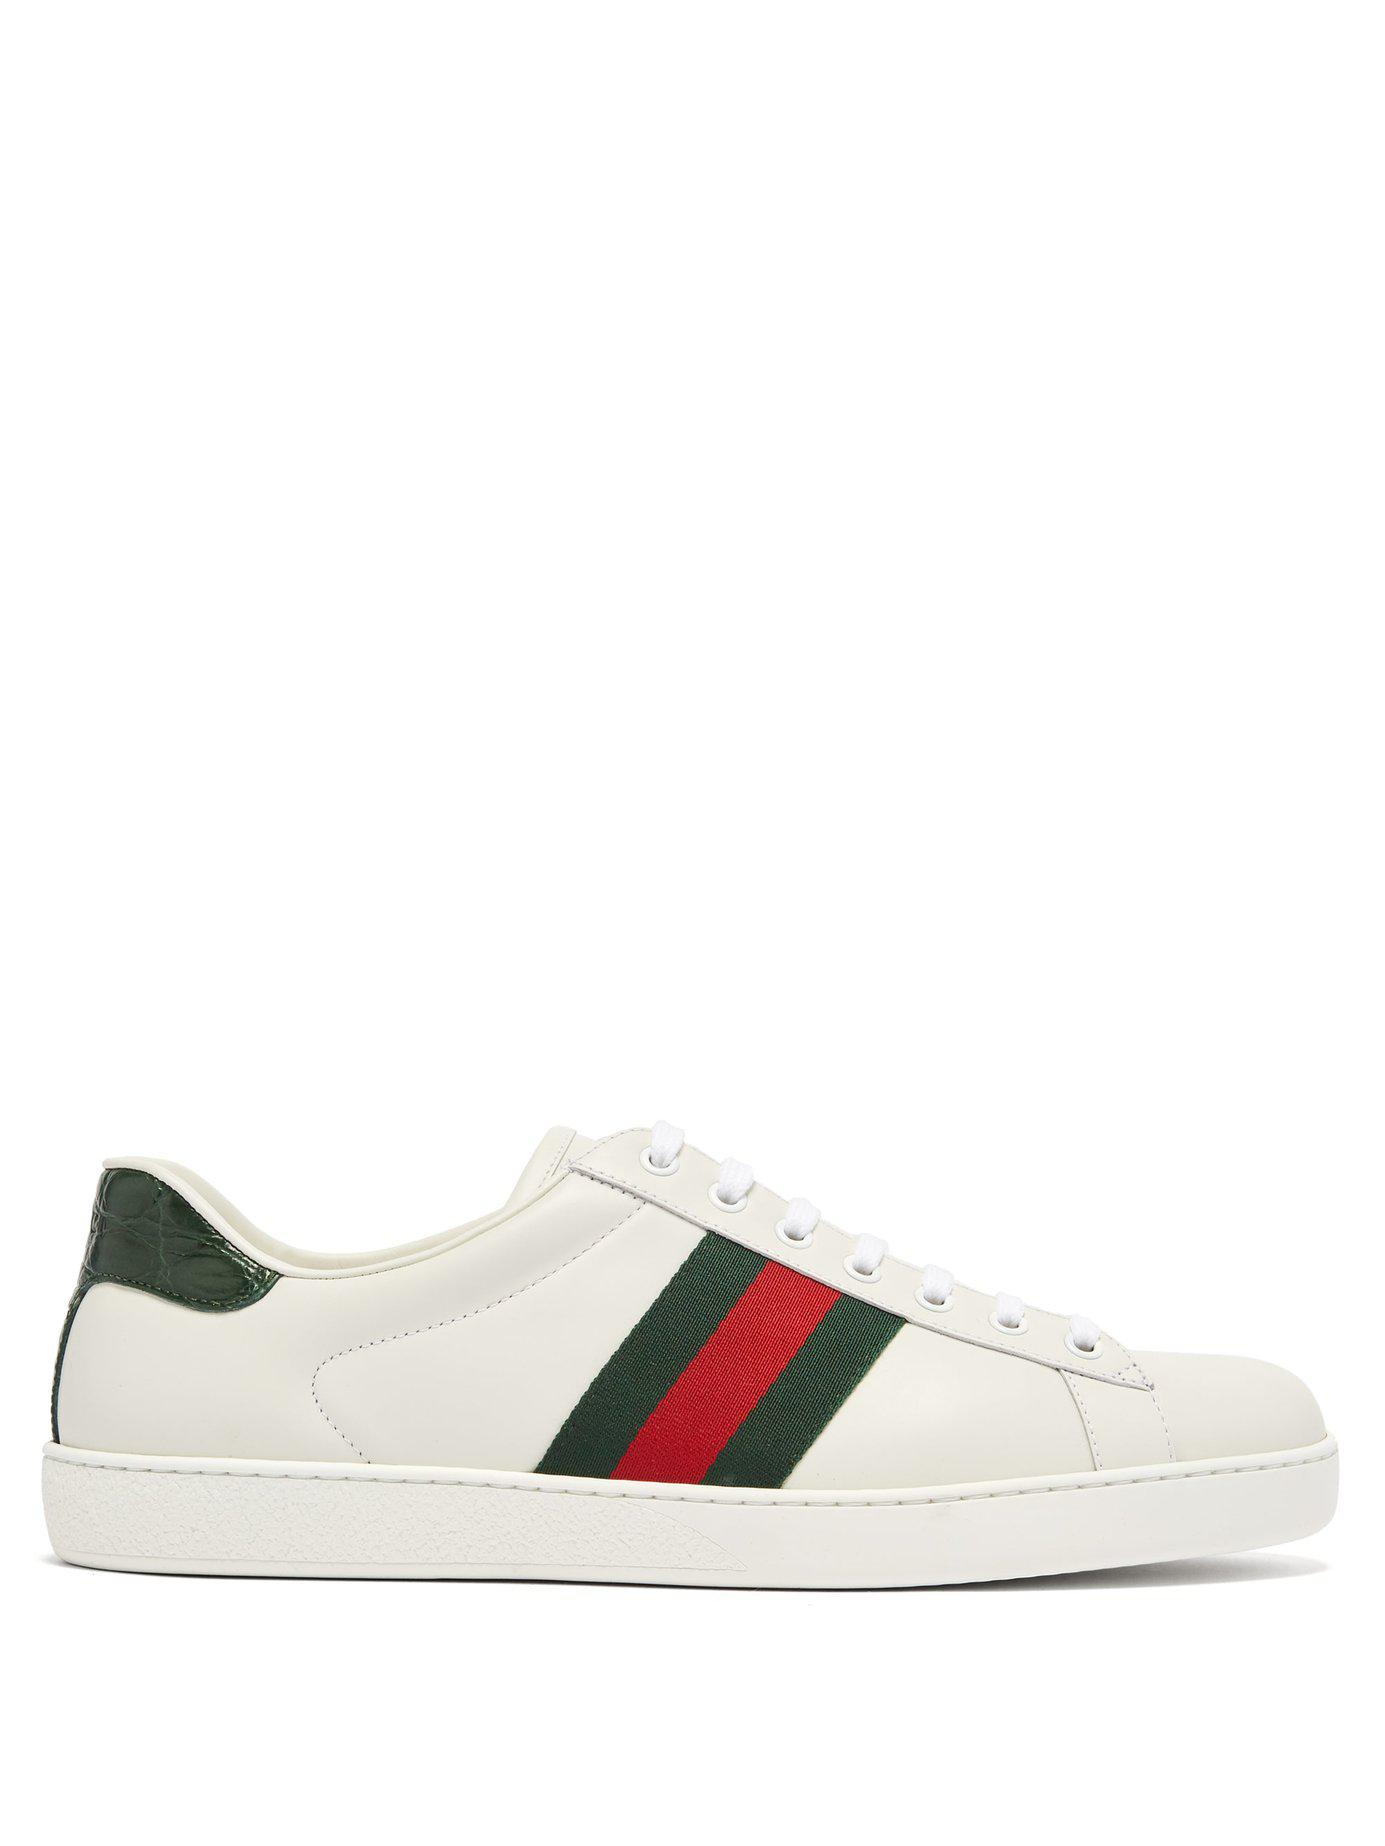 f67db863cd8 Lyst - Gucci Ace Low Top Leather Trainers in White for Men